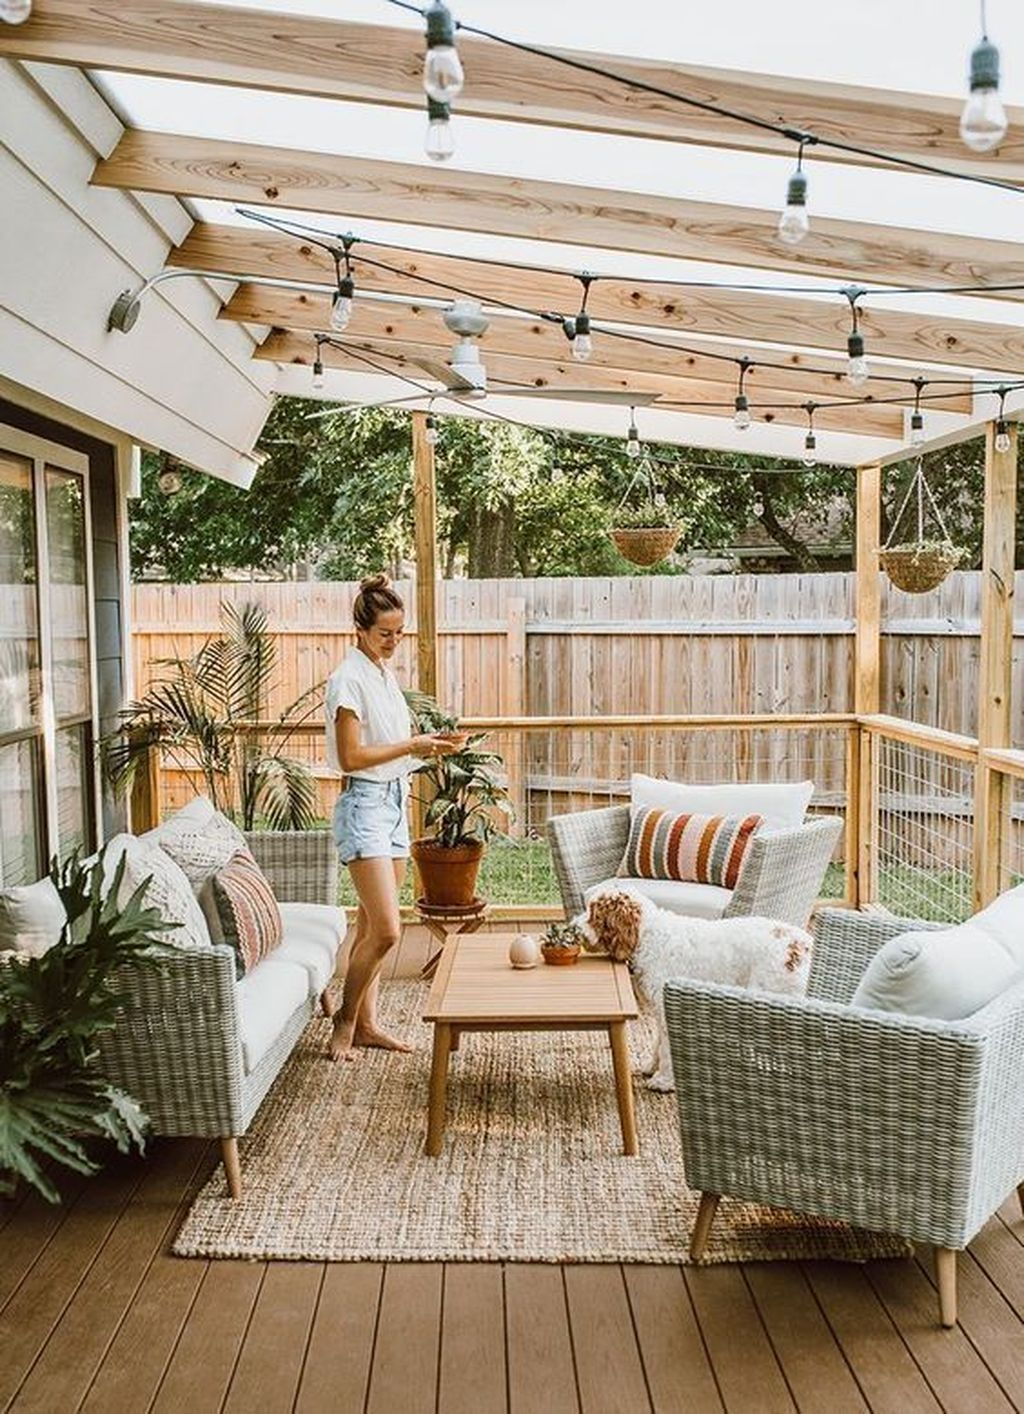 30+ Attractive Terrace Design Ideas For Home On A Budget To Have